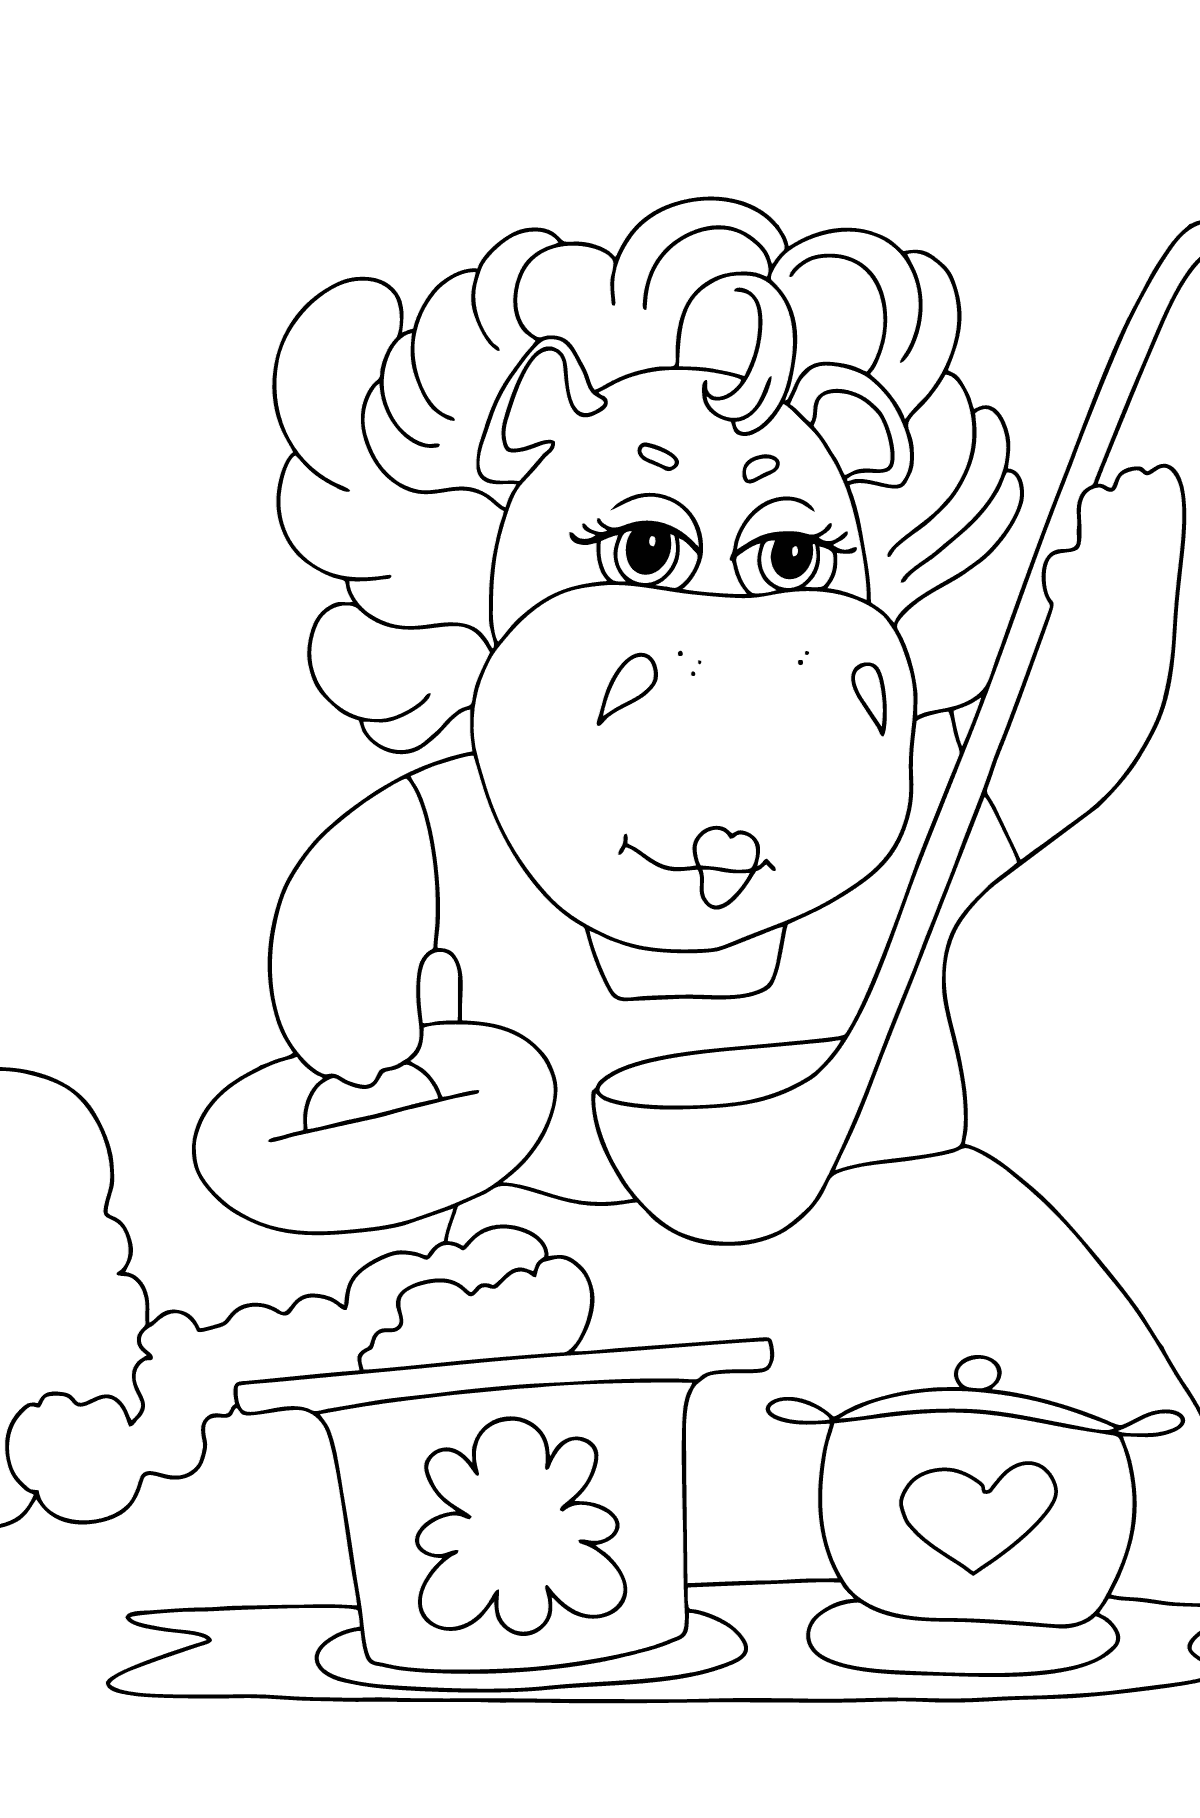 Coloring Page - A Hippo is Cooking a Tasty Lunch for Children